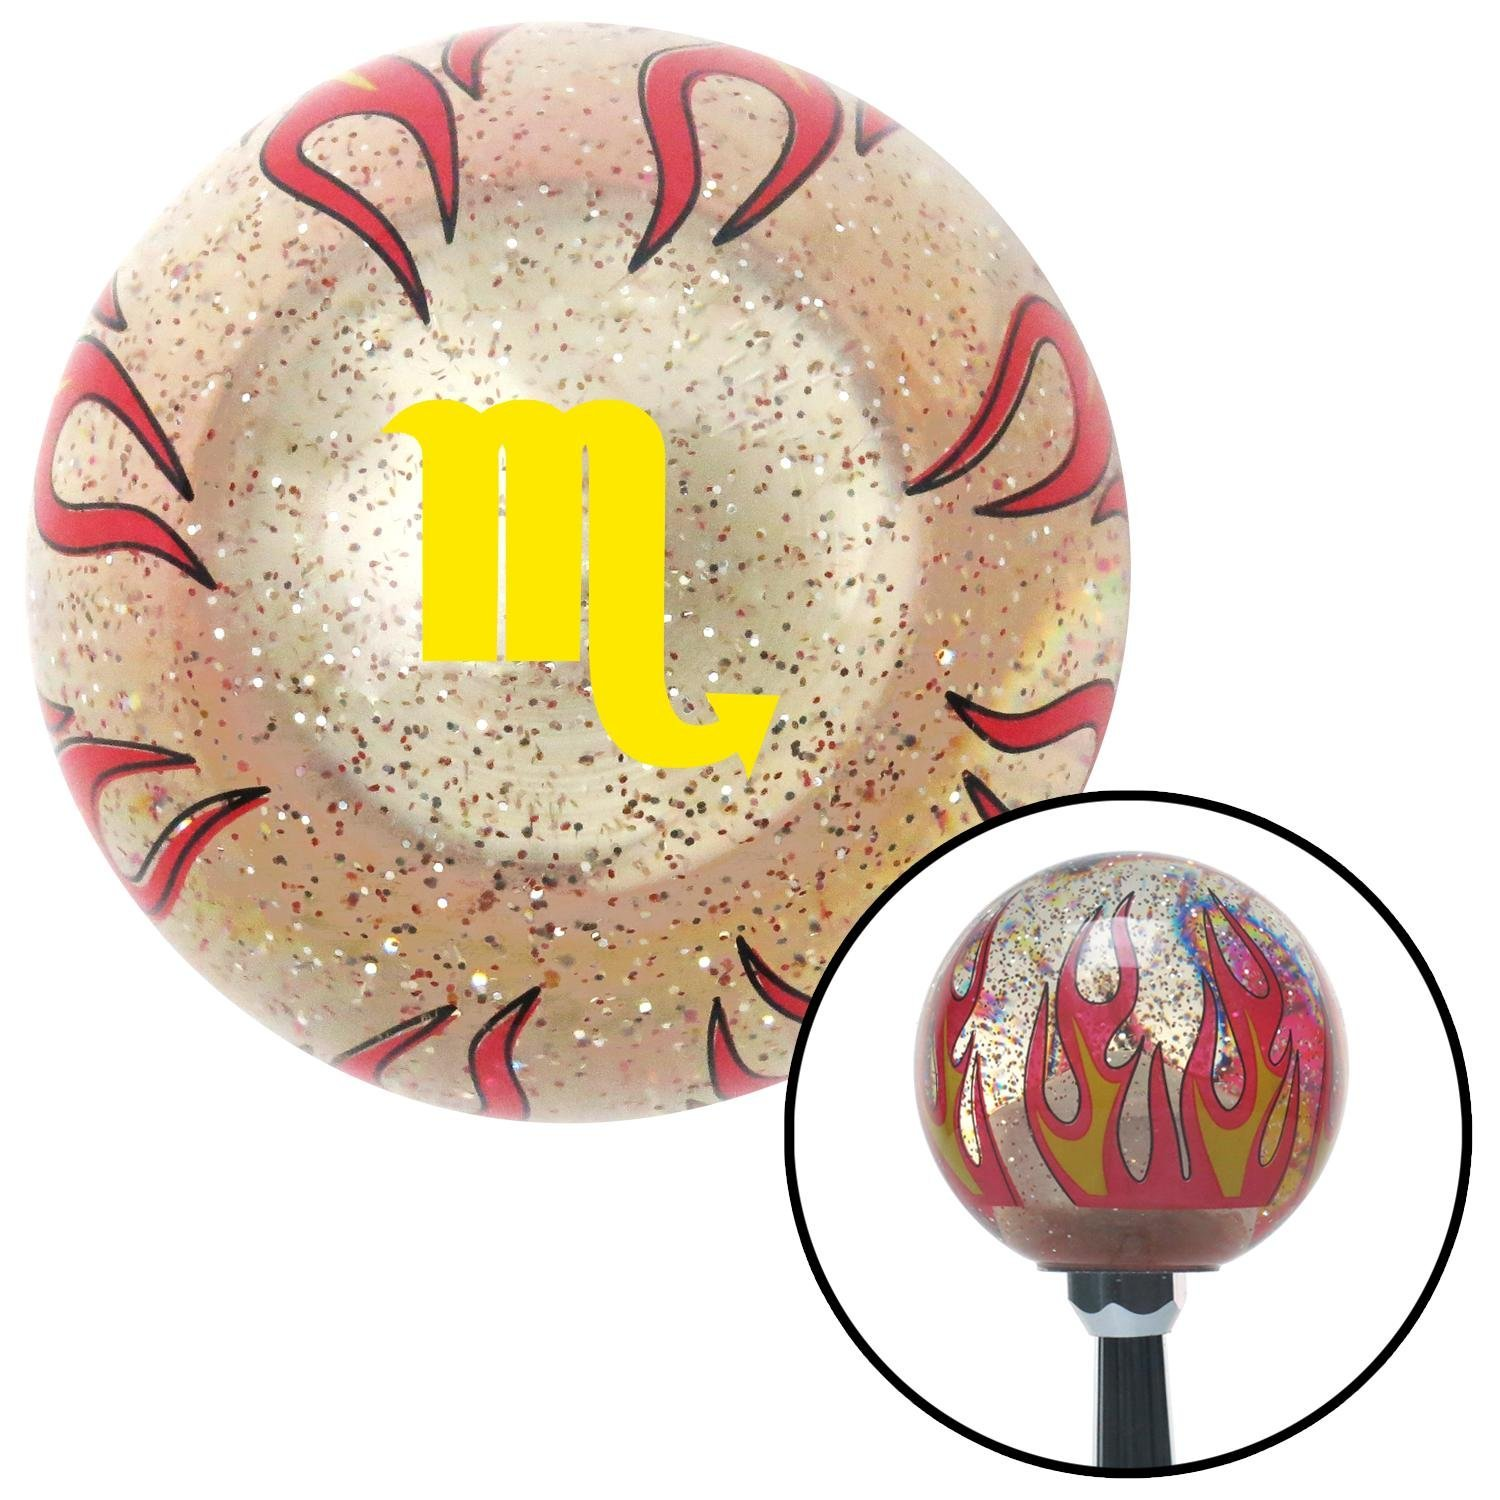 American Shifter 295668 Shift Knob Yellow Scorpio Clear Flame Metal Flake with M16 x 1.5 Insert